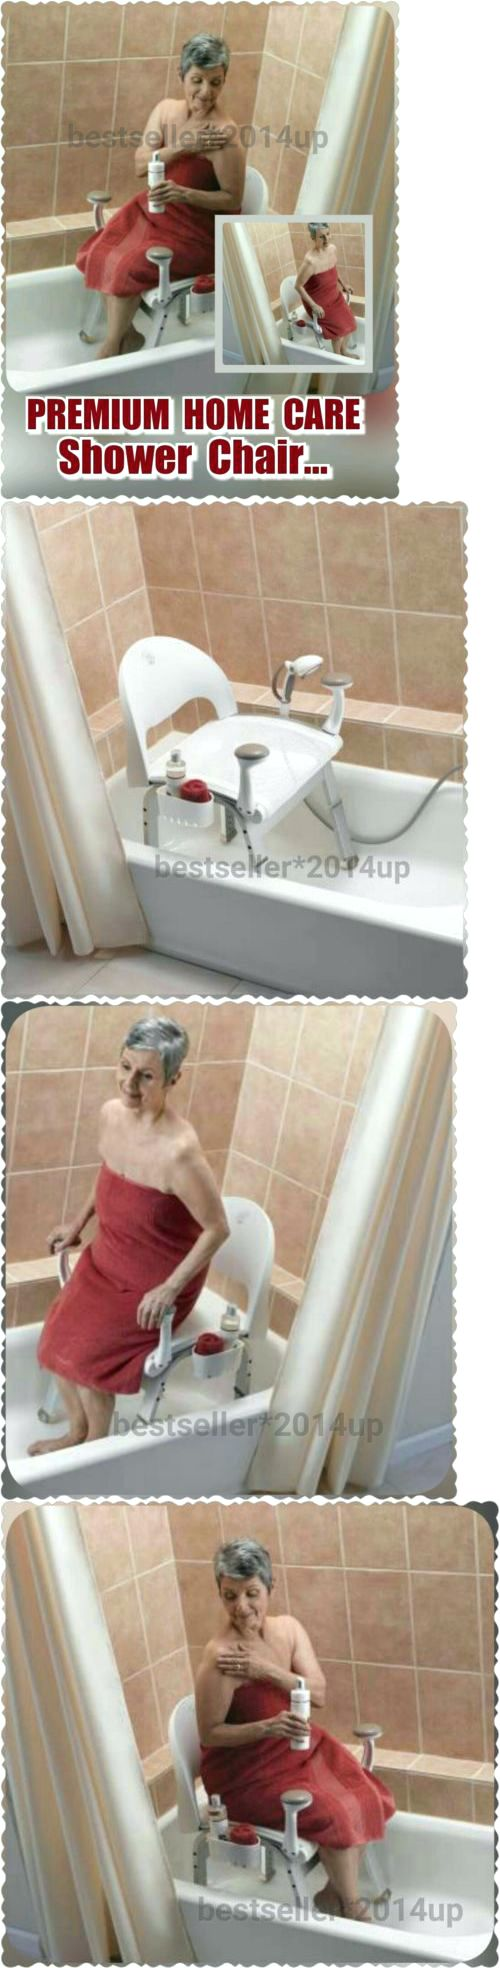 Transfer Tub Bench | Padded Shower Bench | Transfer Bench for Clawfoot Tub